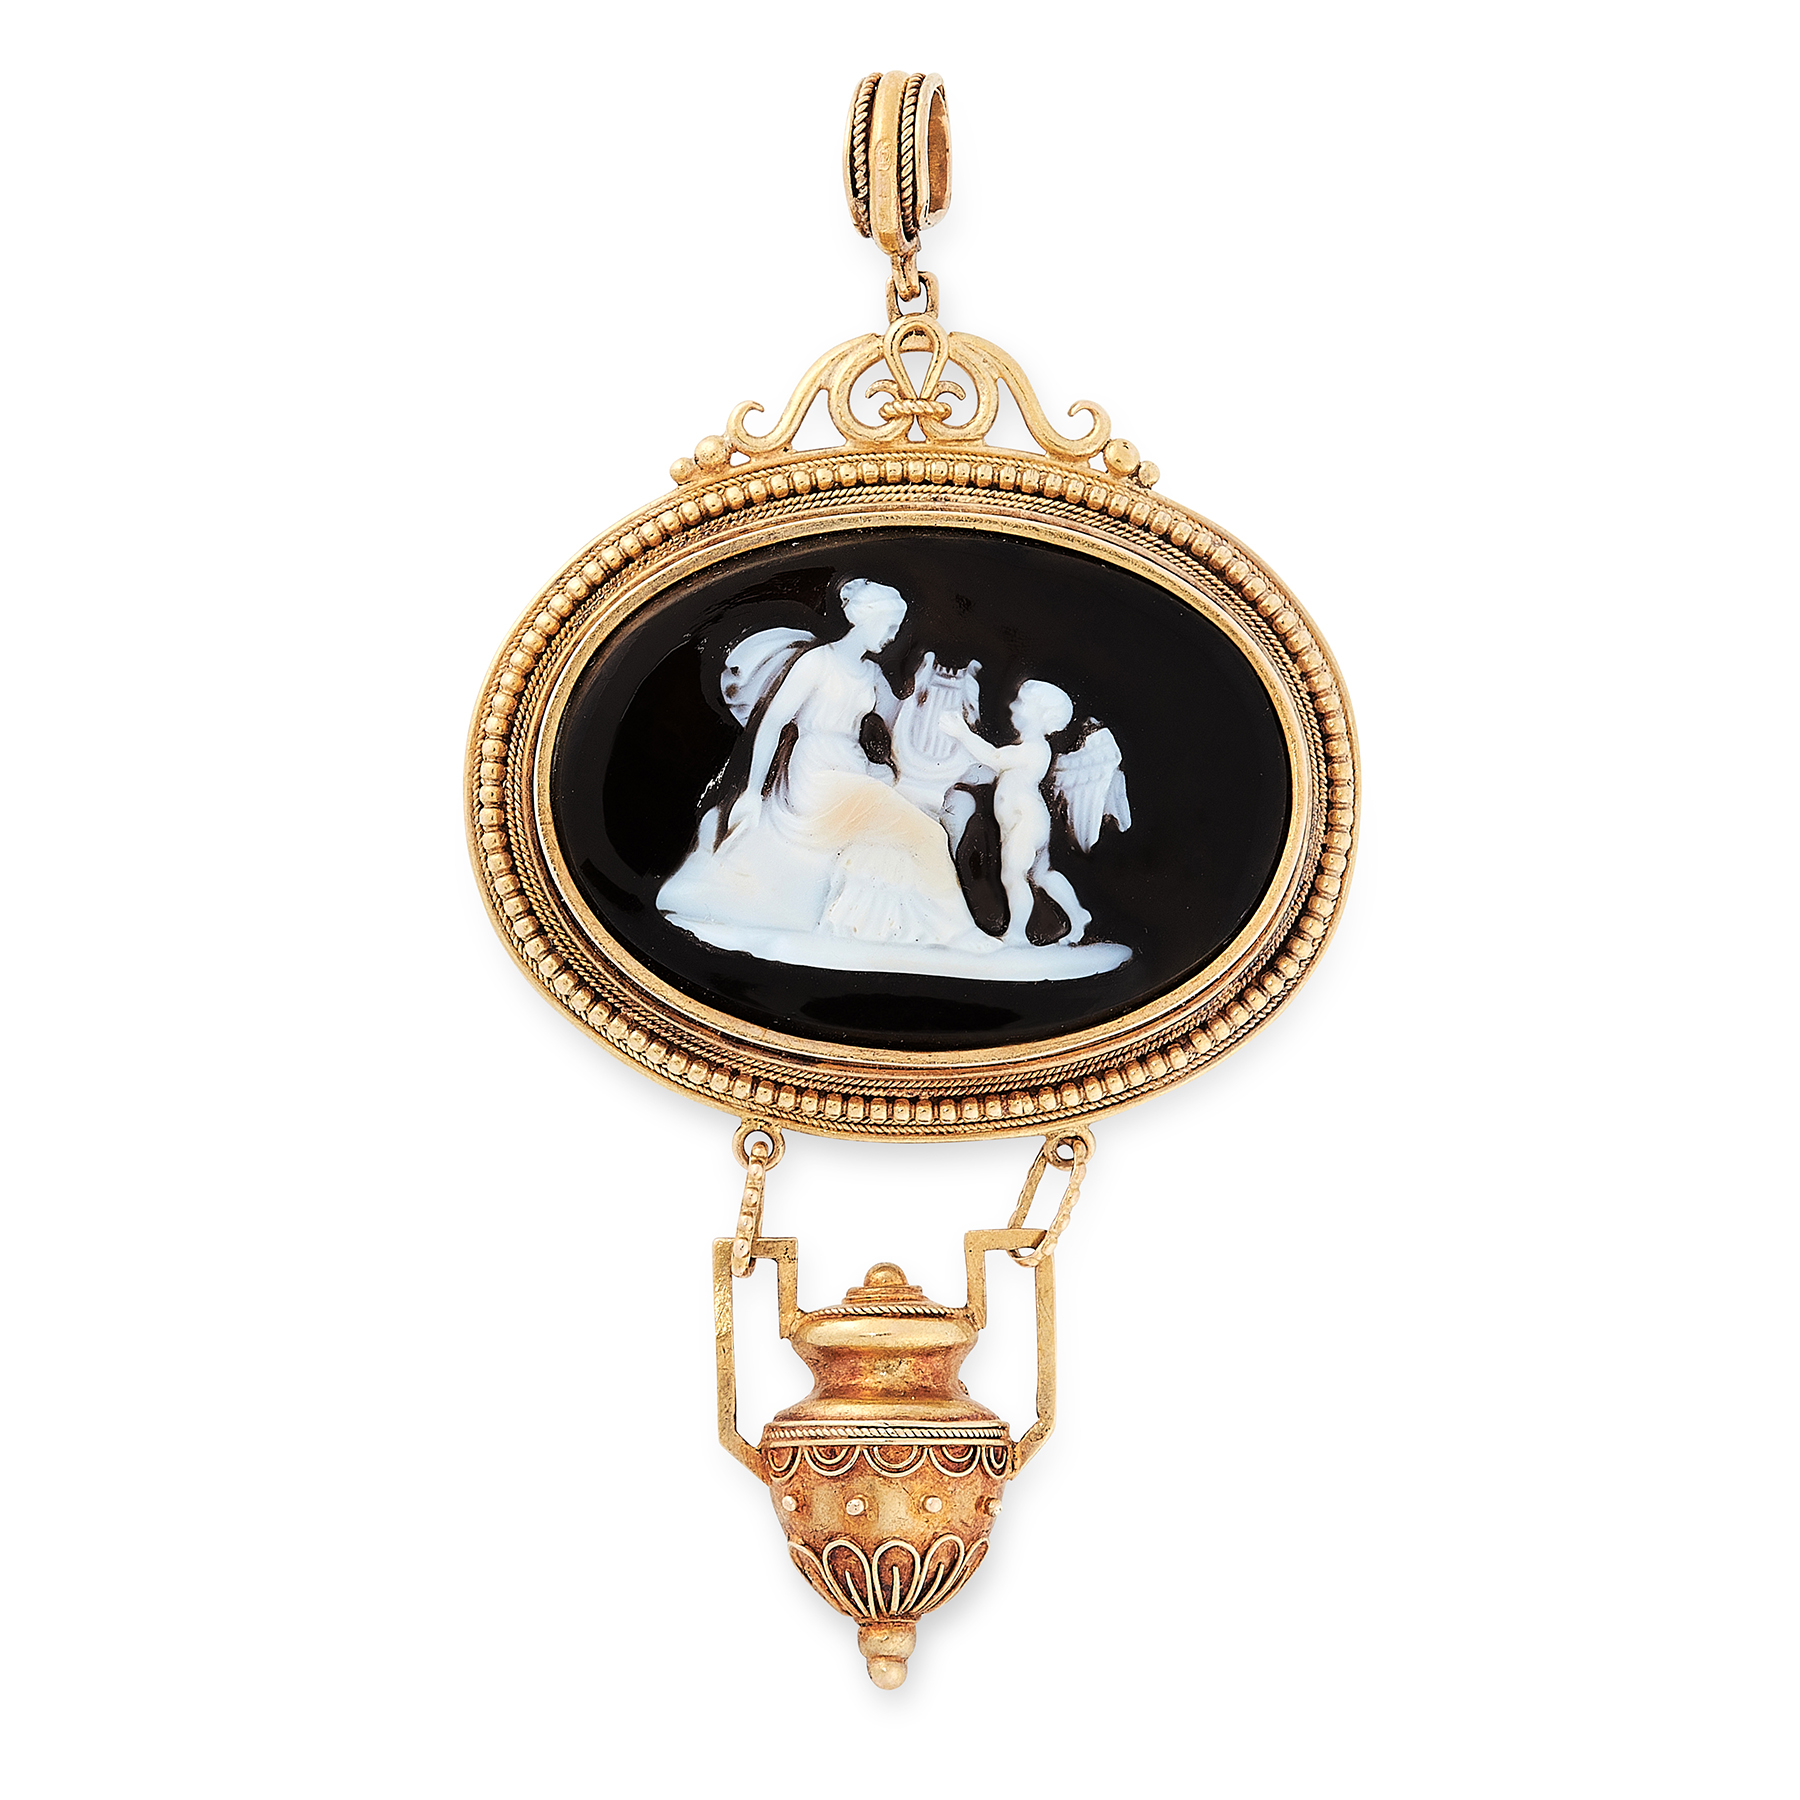 AN ANTIQUE CAMEO PENDANT, 19TH CENTURY in high carat yellow gold, the oval body set with a carved